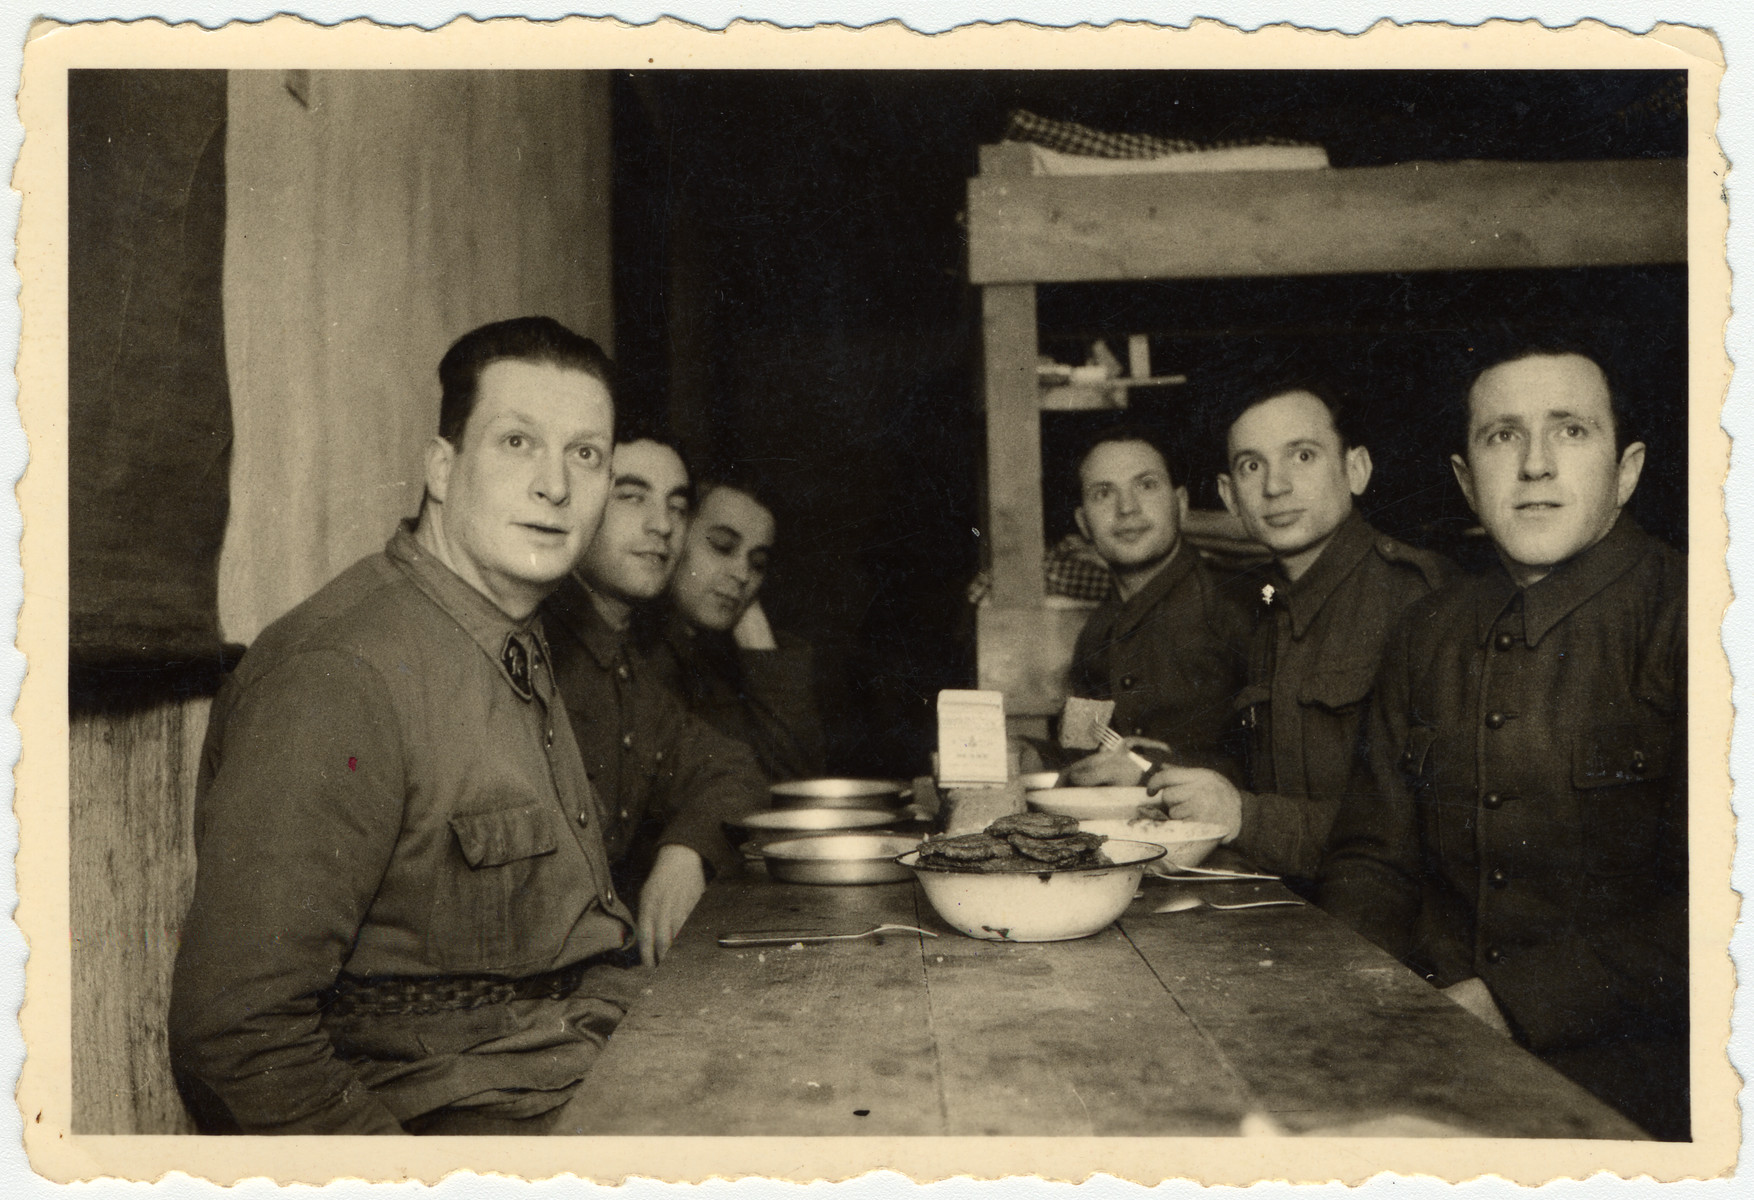 Polish prisoners-of-war celebrate Channukah in their barracks with potato pancakes.  Pictured from left to right are Sokoloff, Max Beker and Philip Kopolansky.